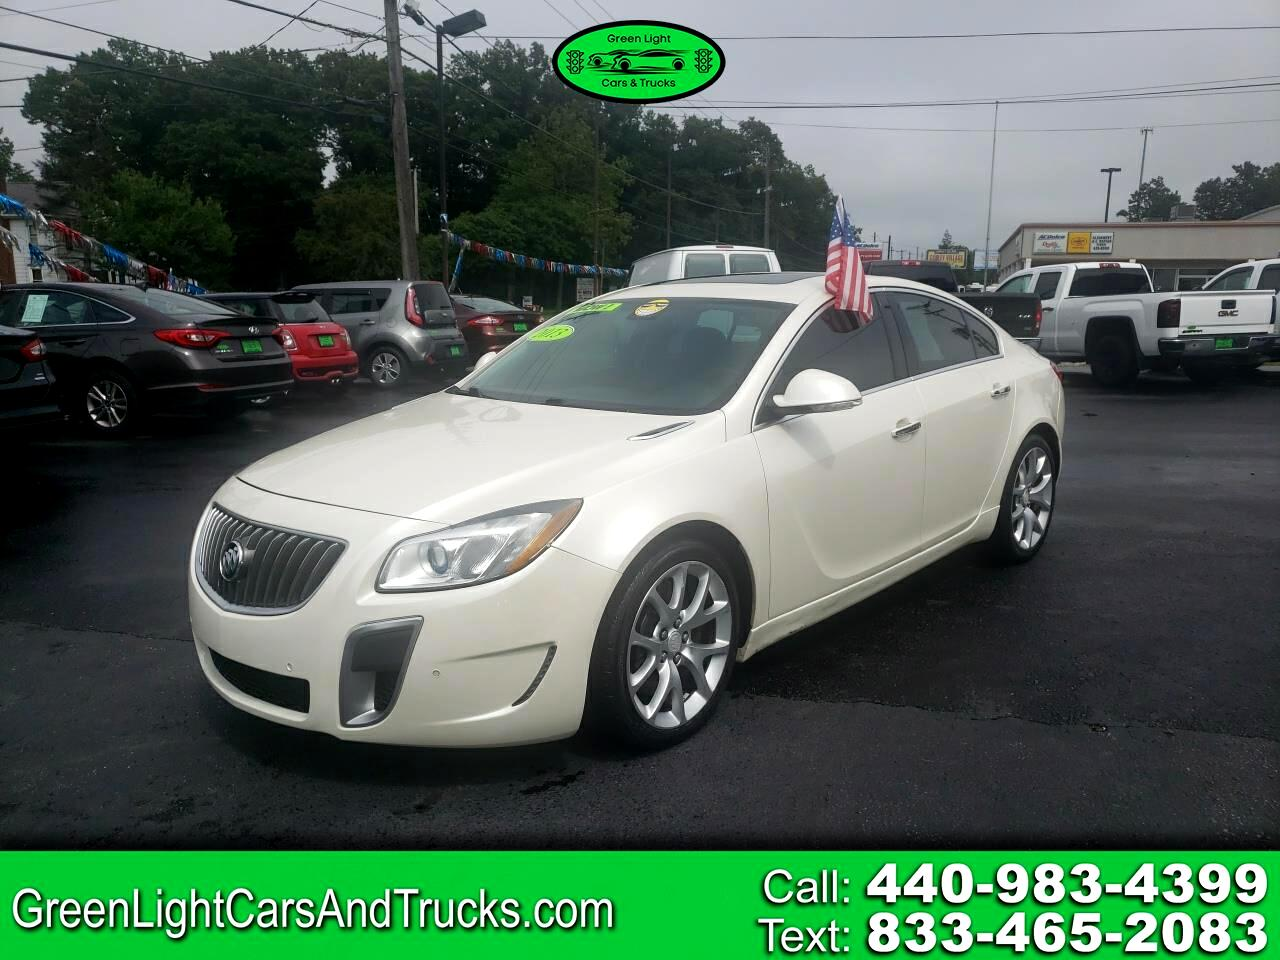 Buick Regal 4dr Sdn GS 2013